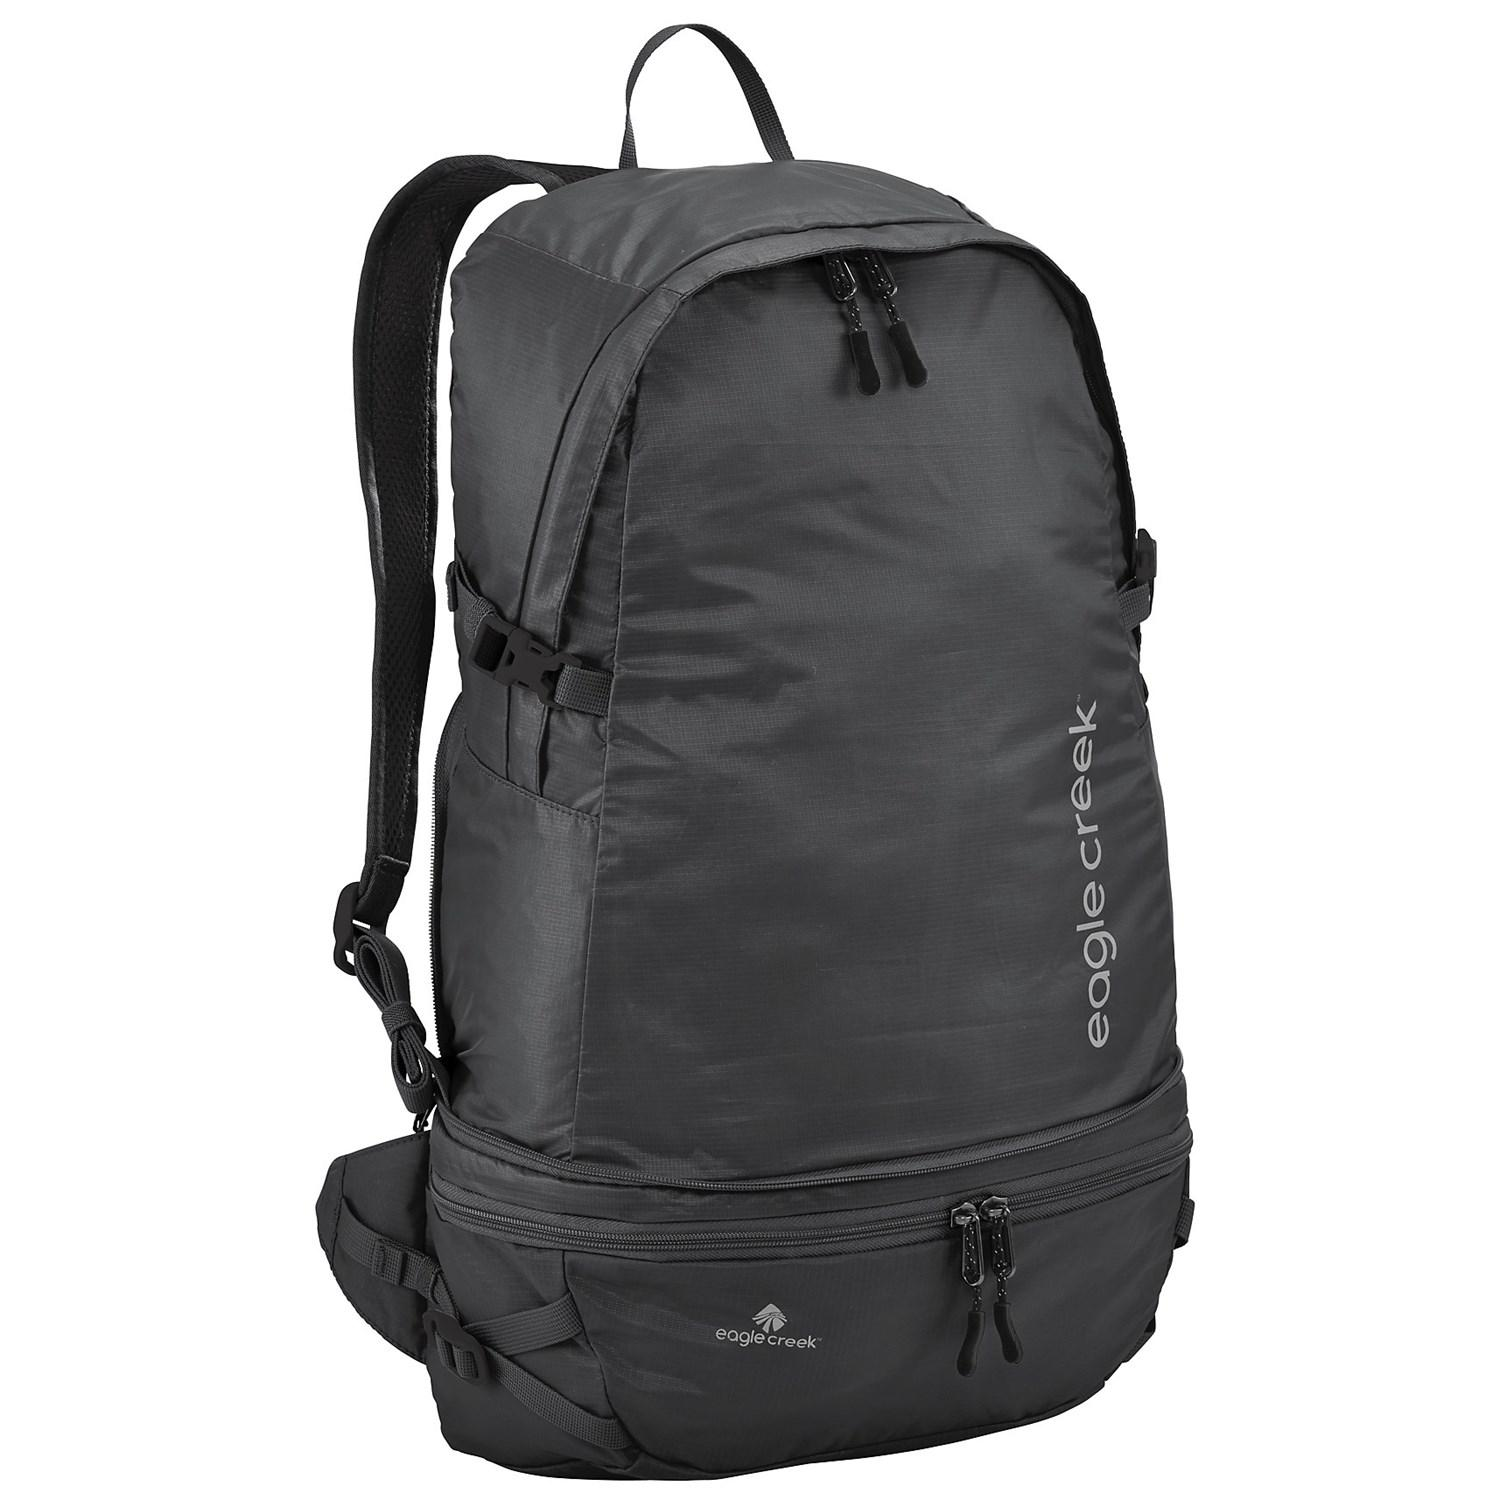 Eagle Creek 2-in-1 Convertible Backpack